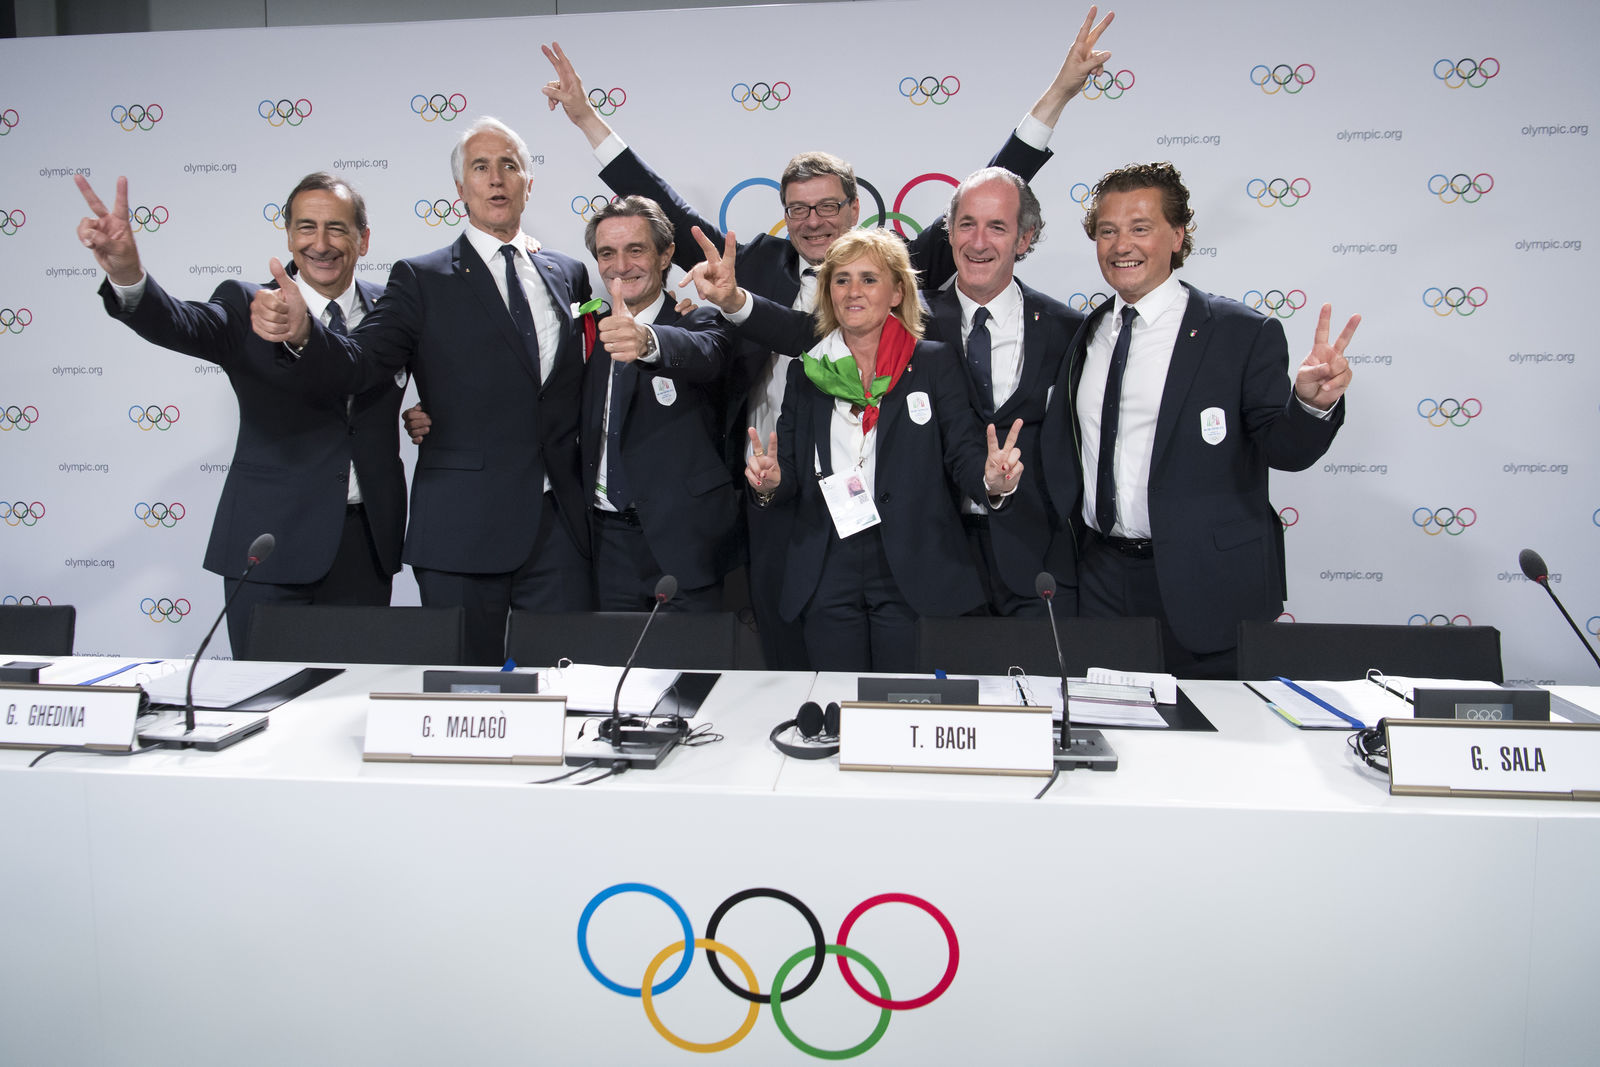 From left, the Mayor of Milan Giuseppe Sala, Italy's National Olympic Committee (CONI) president Giovanni Malago, Italy's Lombardy region President Attilio Fontana, Italy's Under Secretary of State Giancarlo Giorgetti, Italy's Olympic Gold Medallist in Fencing Diana Bianchedi, Italy's Veneto Region President Luca Zaia and Mayor of Cortina Gianpietro Ghedina pose after Milan-Cortina won the bid to host the 2026 Winter Olympic Games, during the first day of the 134th Session of the International Olympic Committee (IOC), at the SwissTech Convention Centre, in Lausanne, Switzerland, Monday, June 24, 2019.{ } (Laurent Gillieron/Keystone via AP)